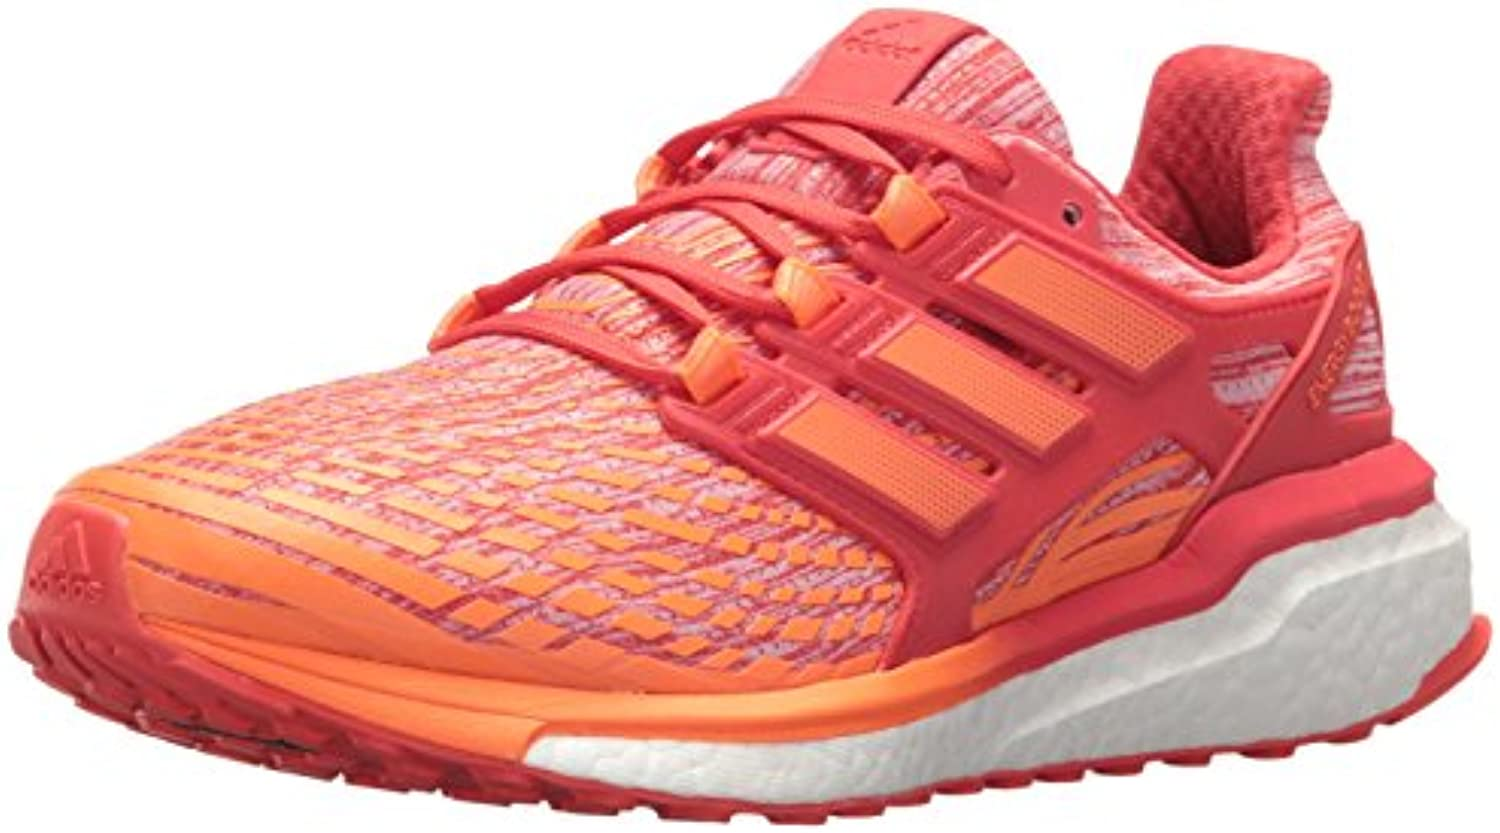 Adidas adidasEnergy Boost - Energy Boost, Donna Donna Donna Donna | Nuova voce  006ced